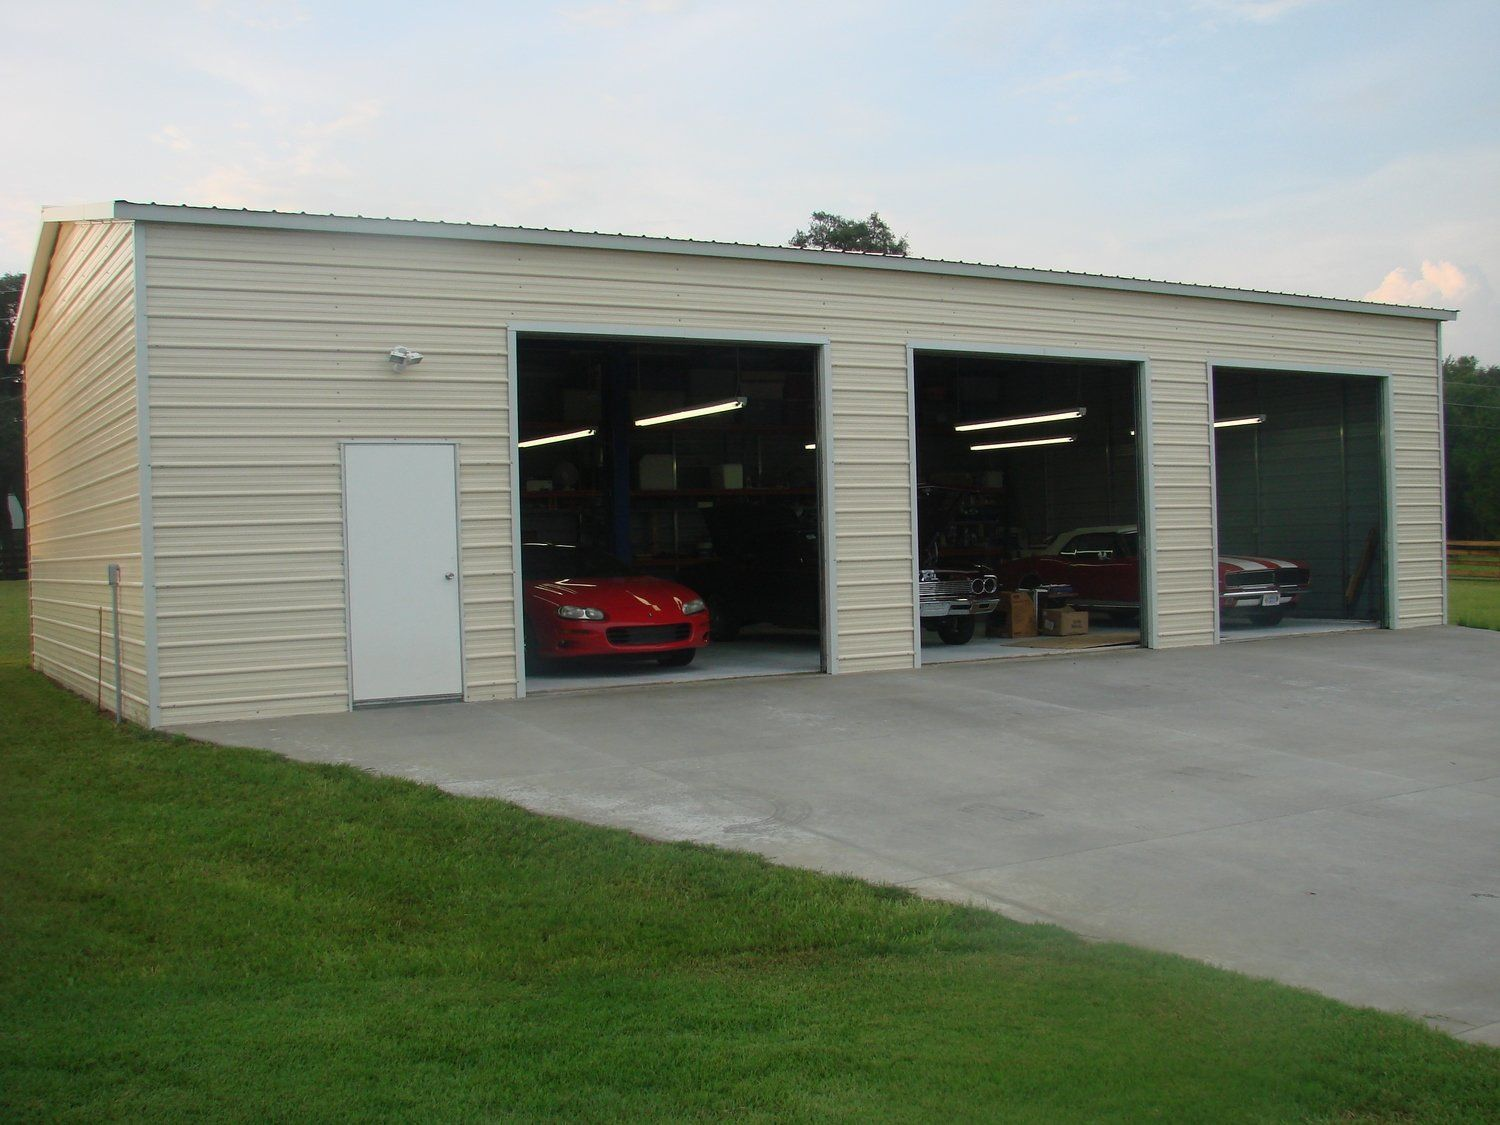 30 X 40 X 12 Workshop With Two 10 X 10 Roll Up Doors And One Walk In Door 8211 Store 821 Metal Garage Buildings Garage Door Design Steel Garage Buildings